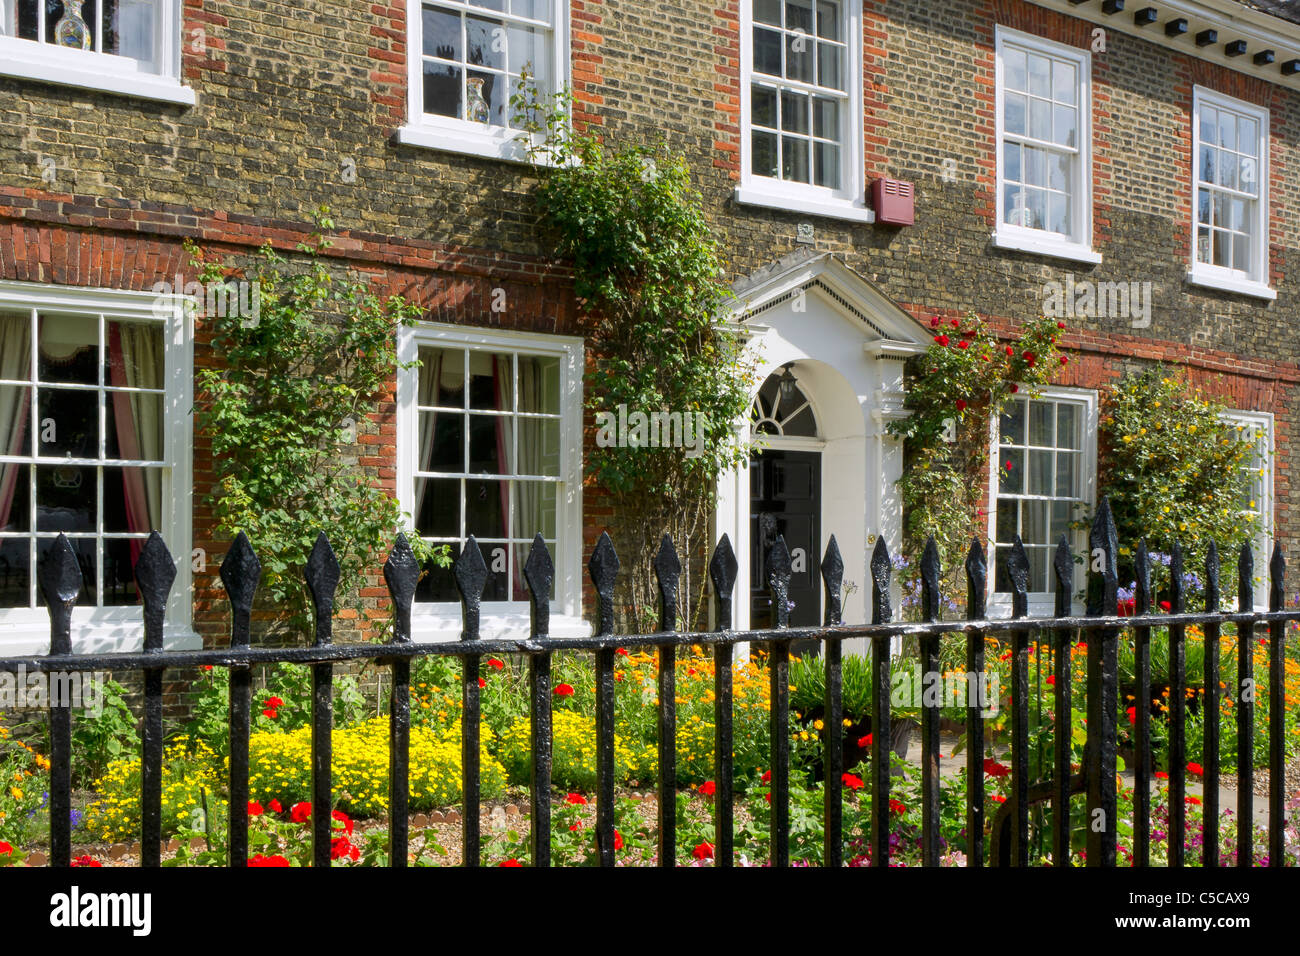 An old house with floral summer border on Palace Green by the Cathedral in Ely, Cambs - Stock Image